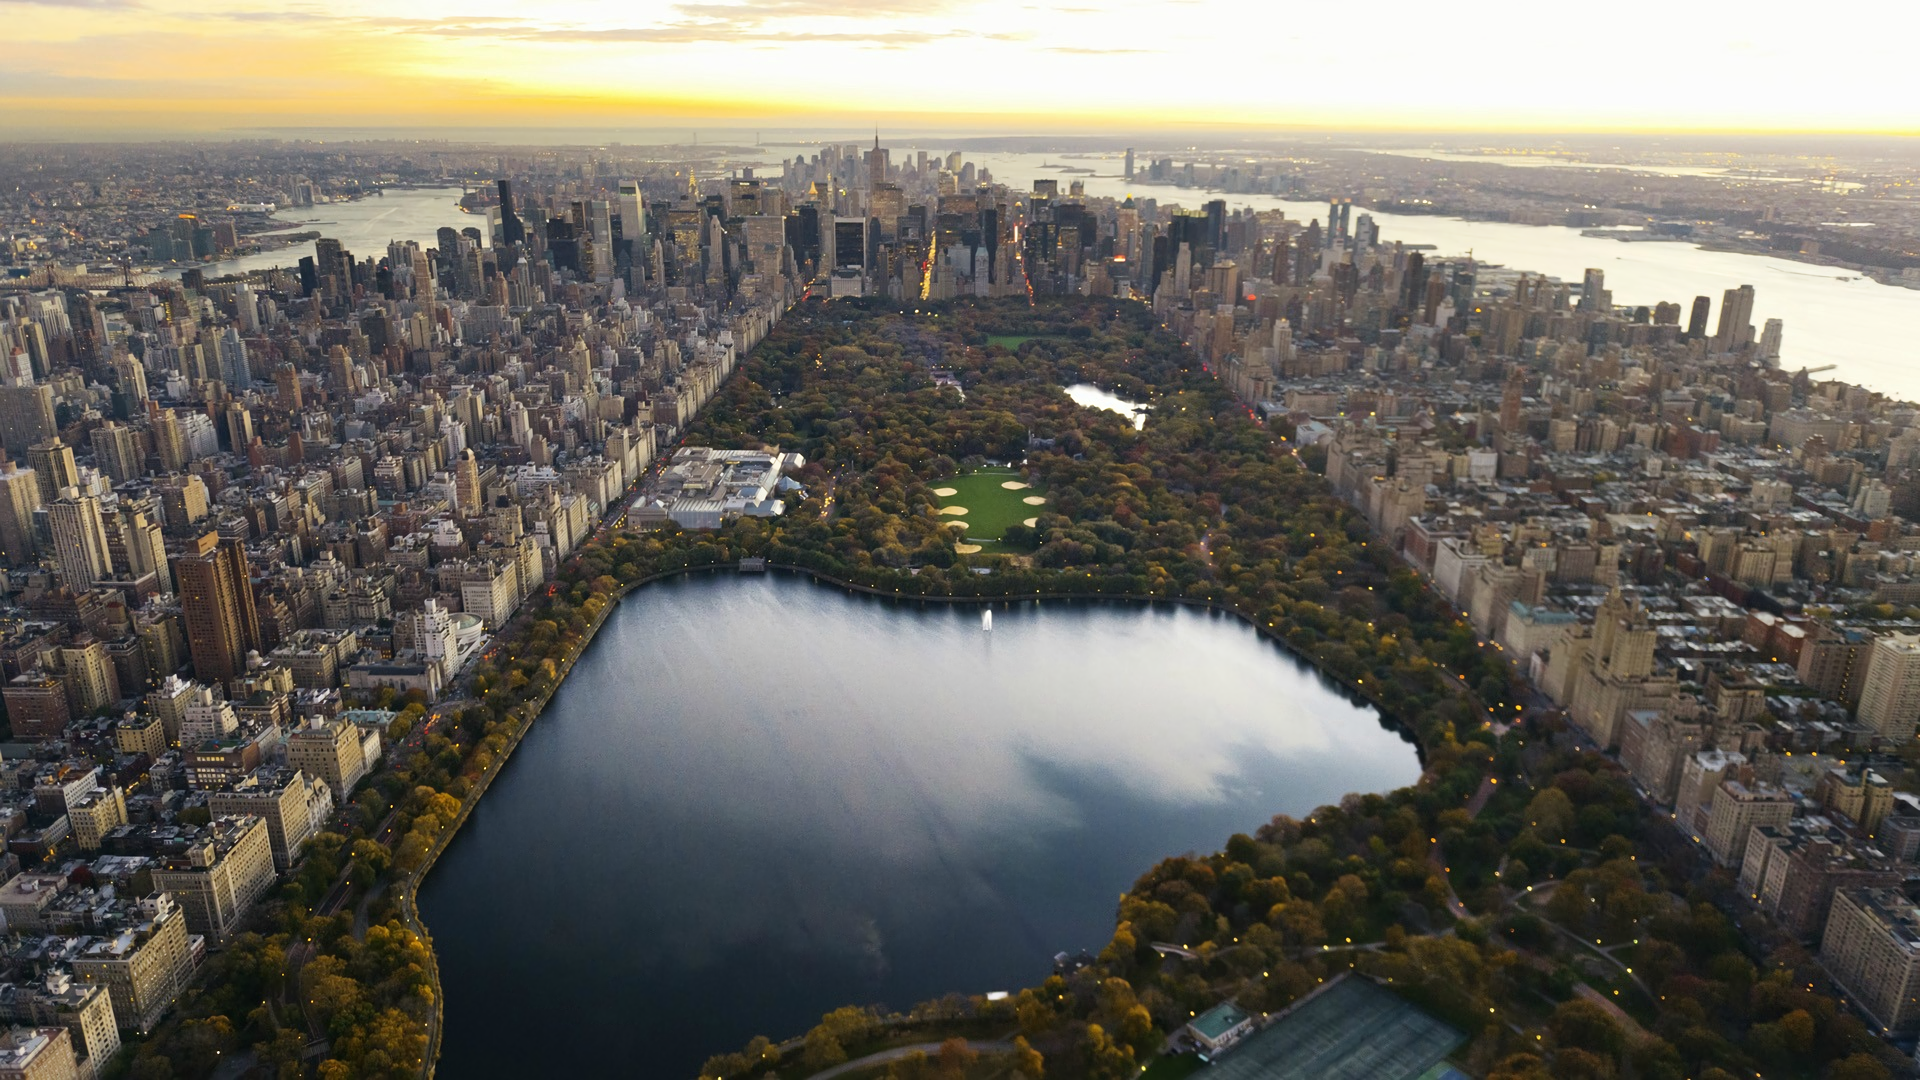 Aerial View Of New York City Full HD Wallpaper And Background Image